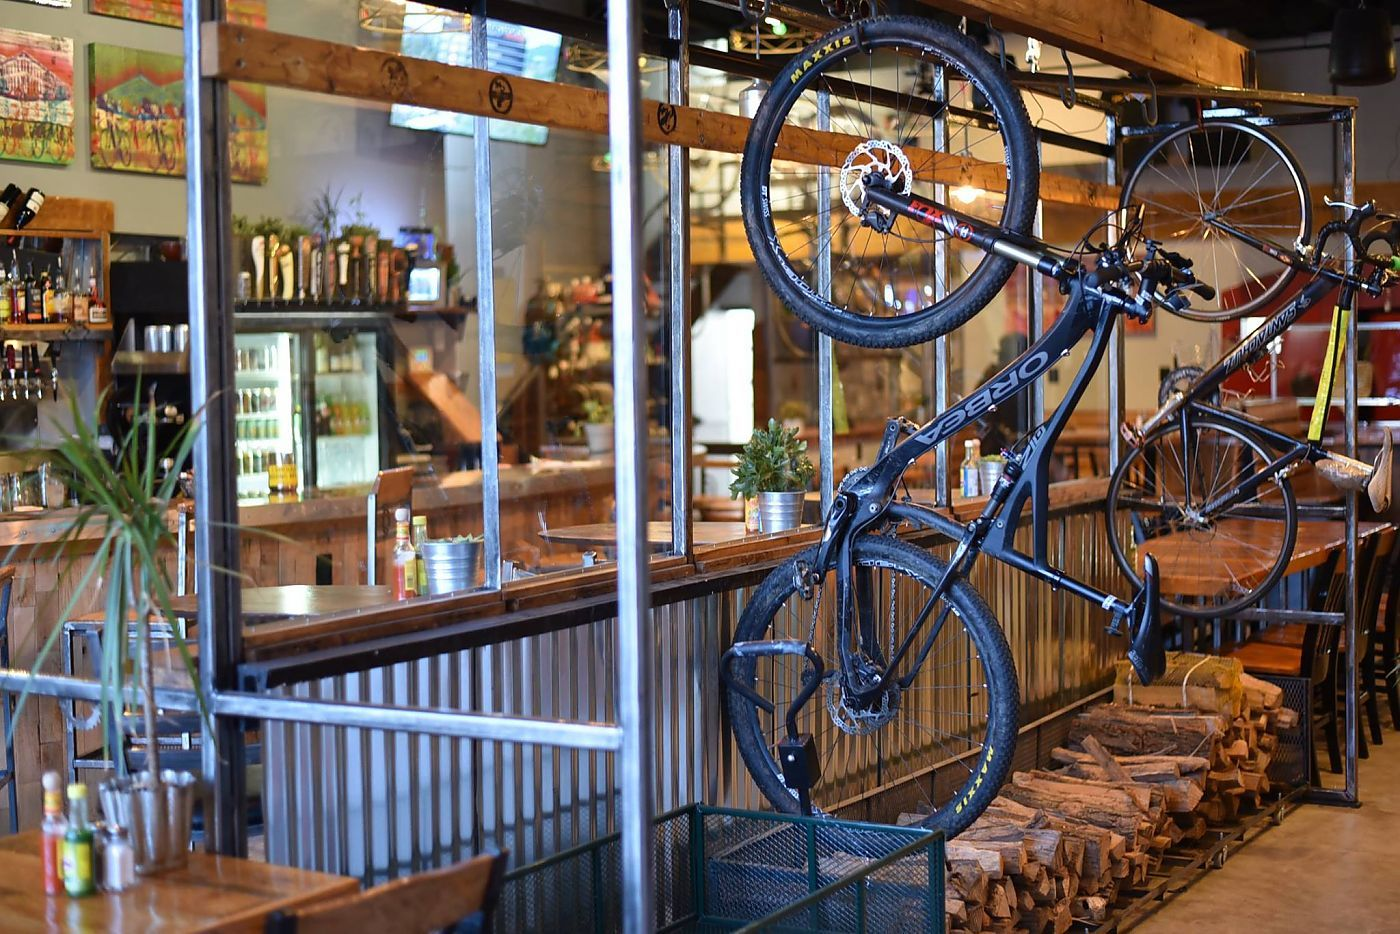 Mountain bike champion Marla Streb opens bike shop and cafe ...